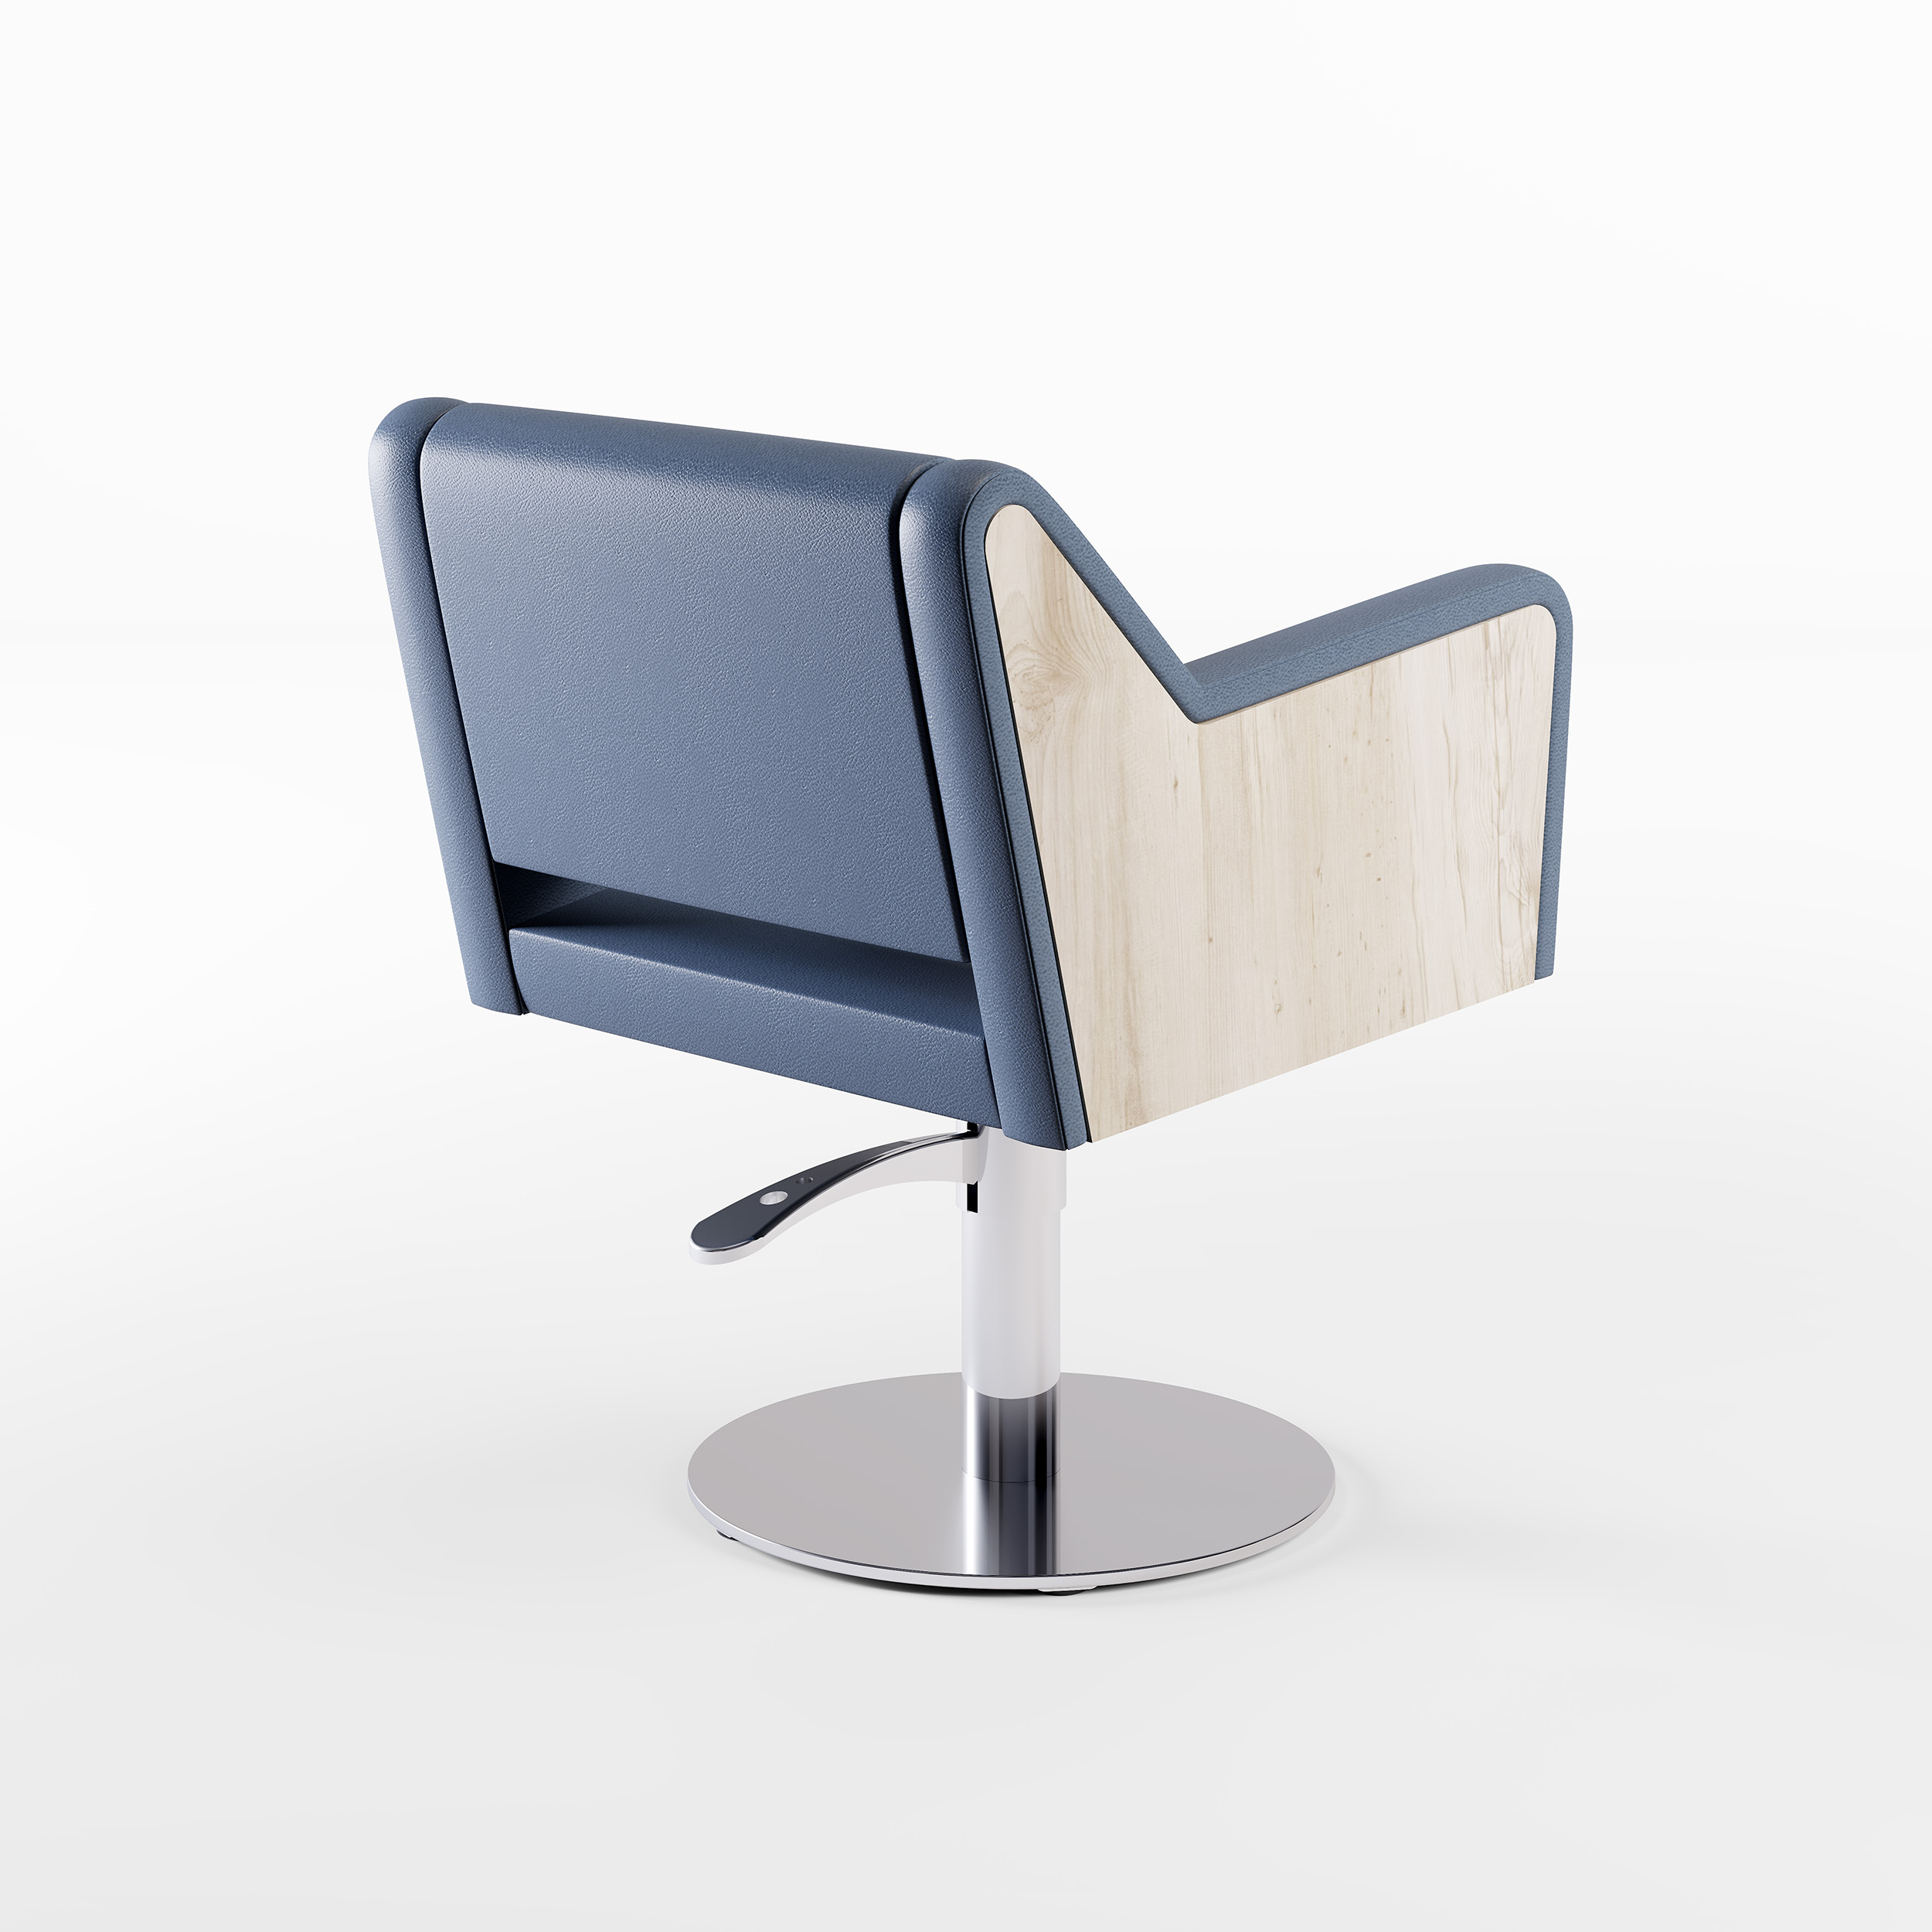 Cindarella Philosophy Styling Chair - Wood Panel Detail - Novvo Etopa